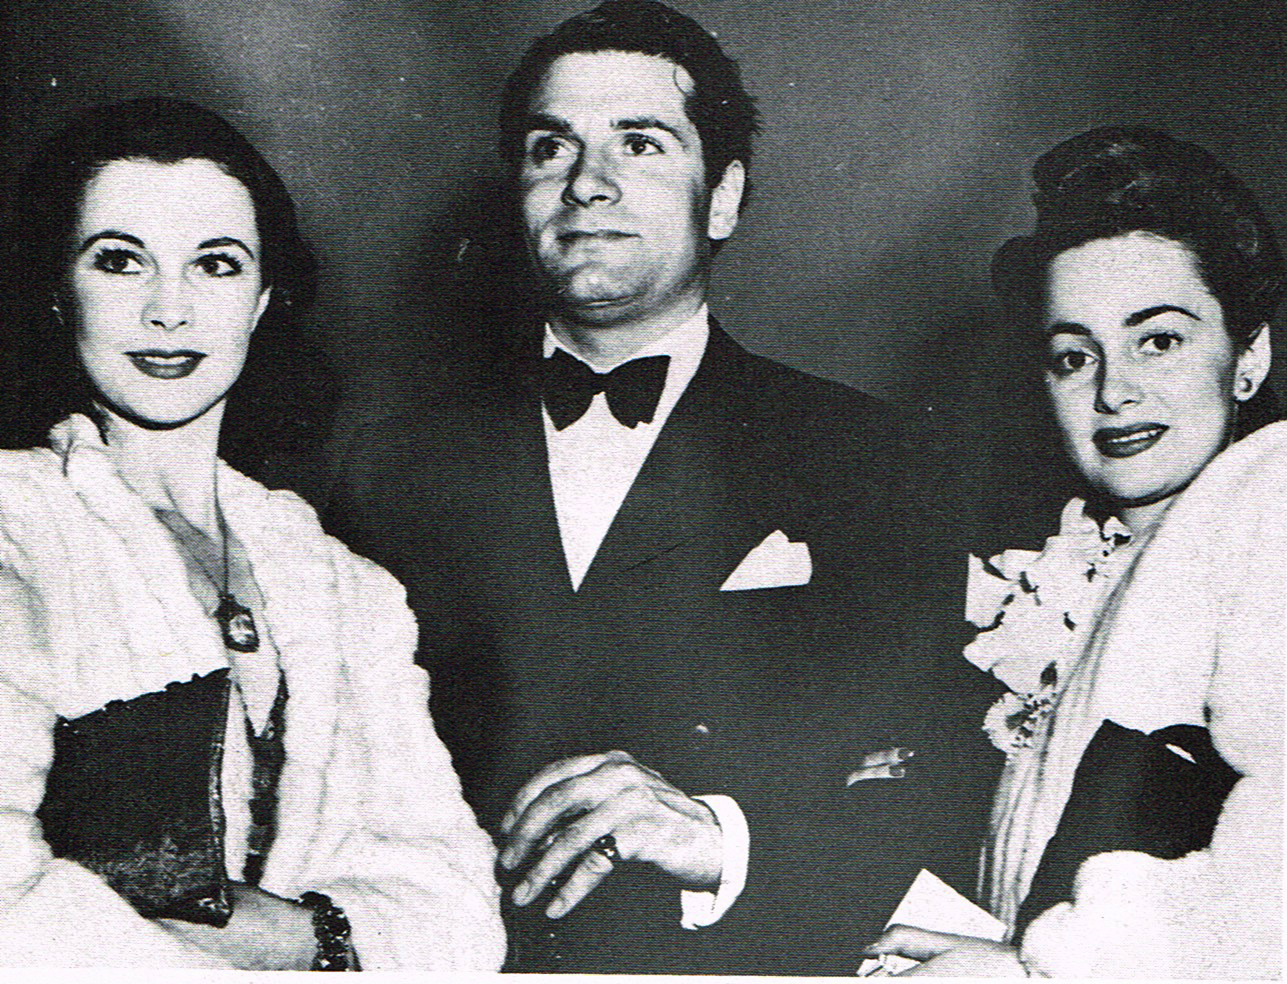 Vivien Leigh, Laurence Olivier and Olivia de Havilland at the Oscars